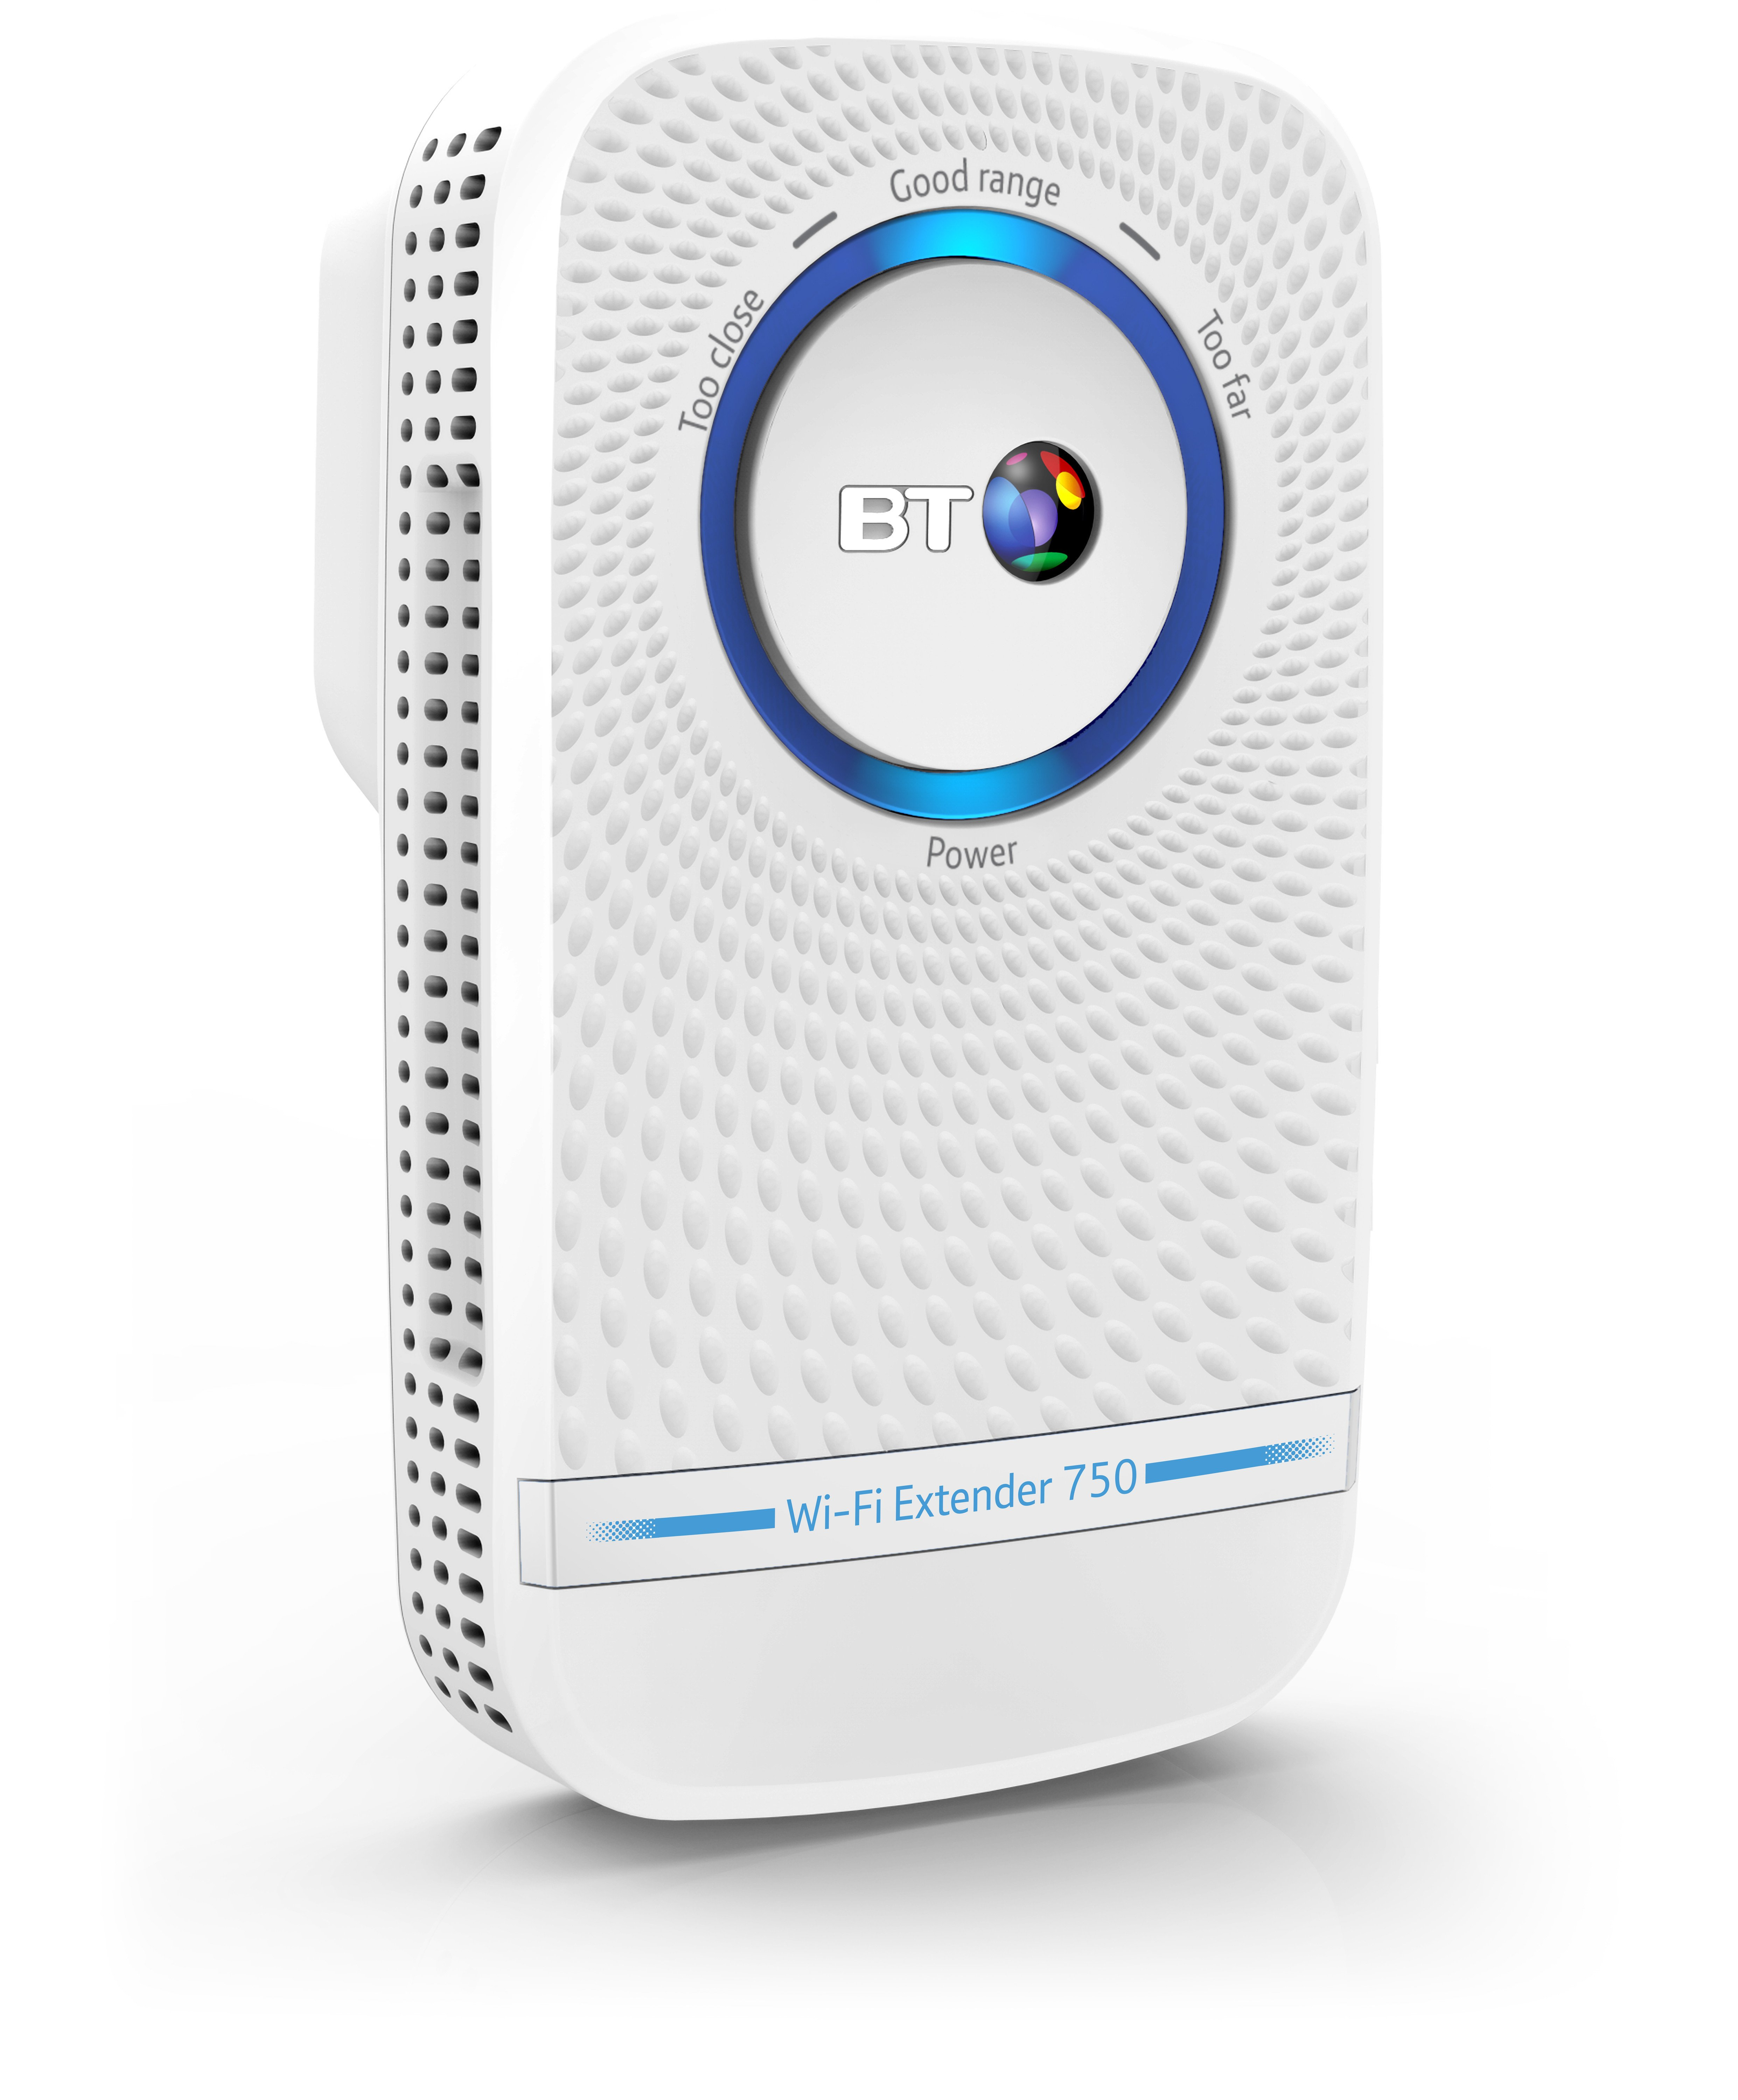 BT 750 Dual Band Wi-Fi Extender